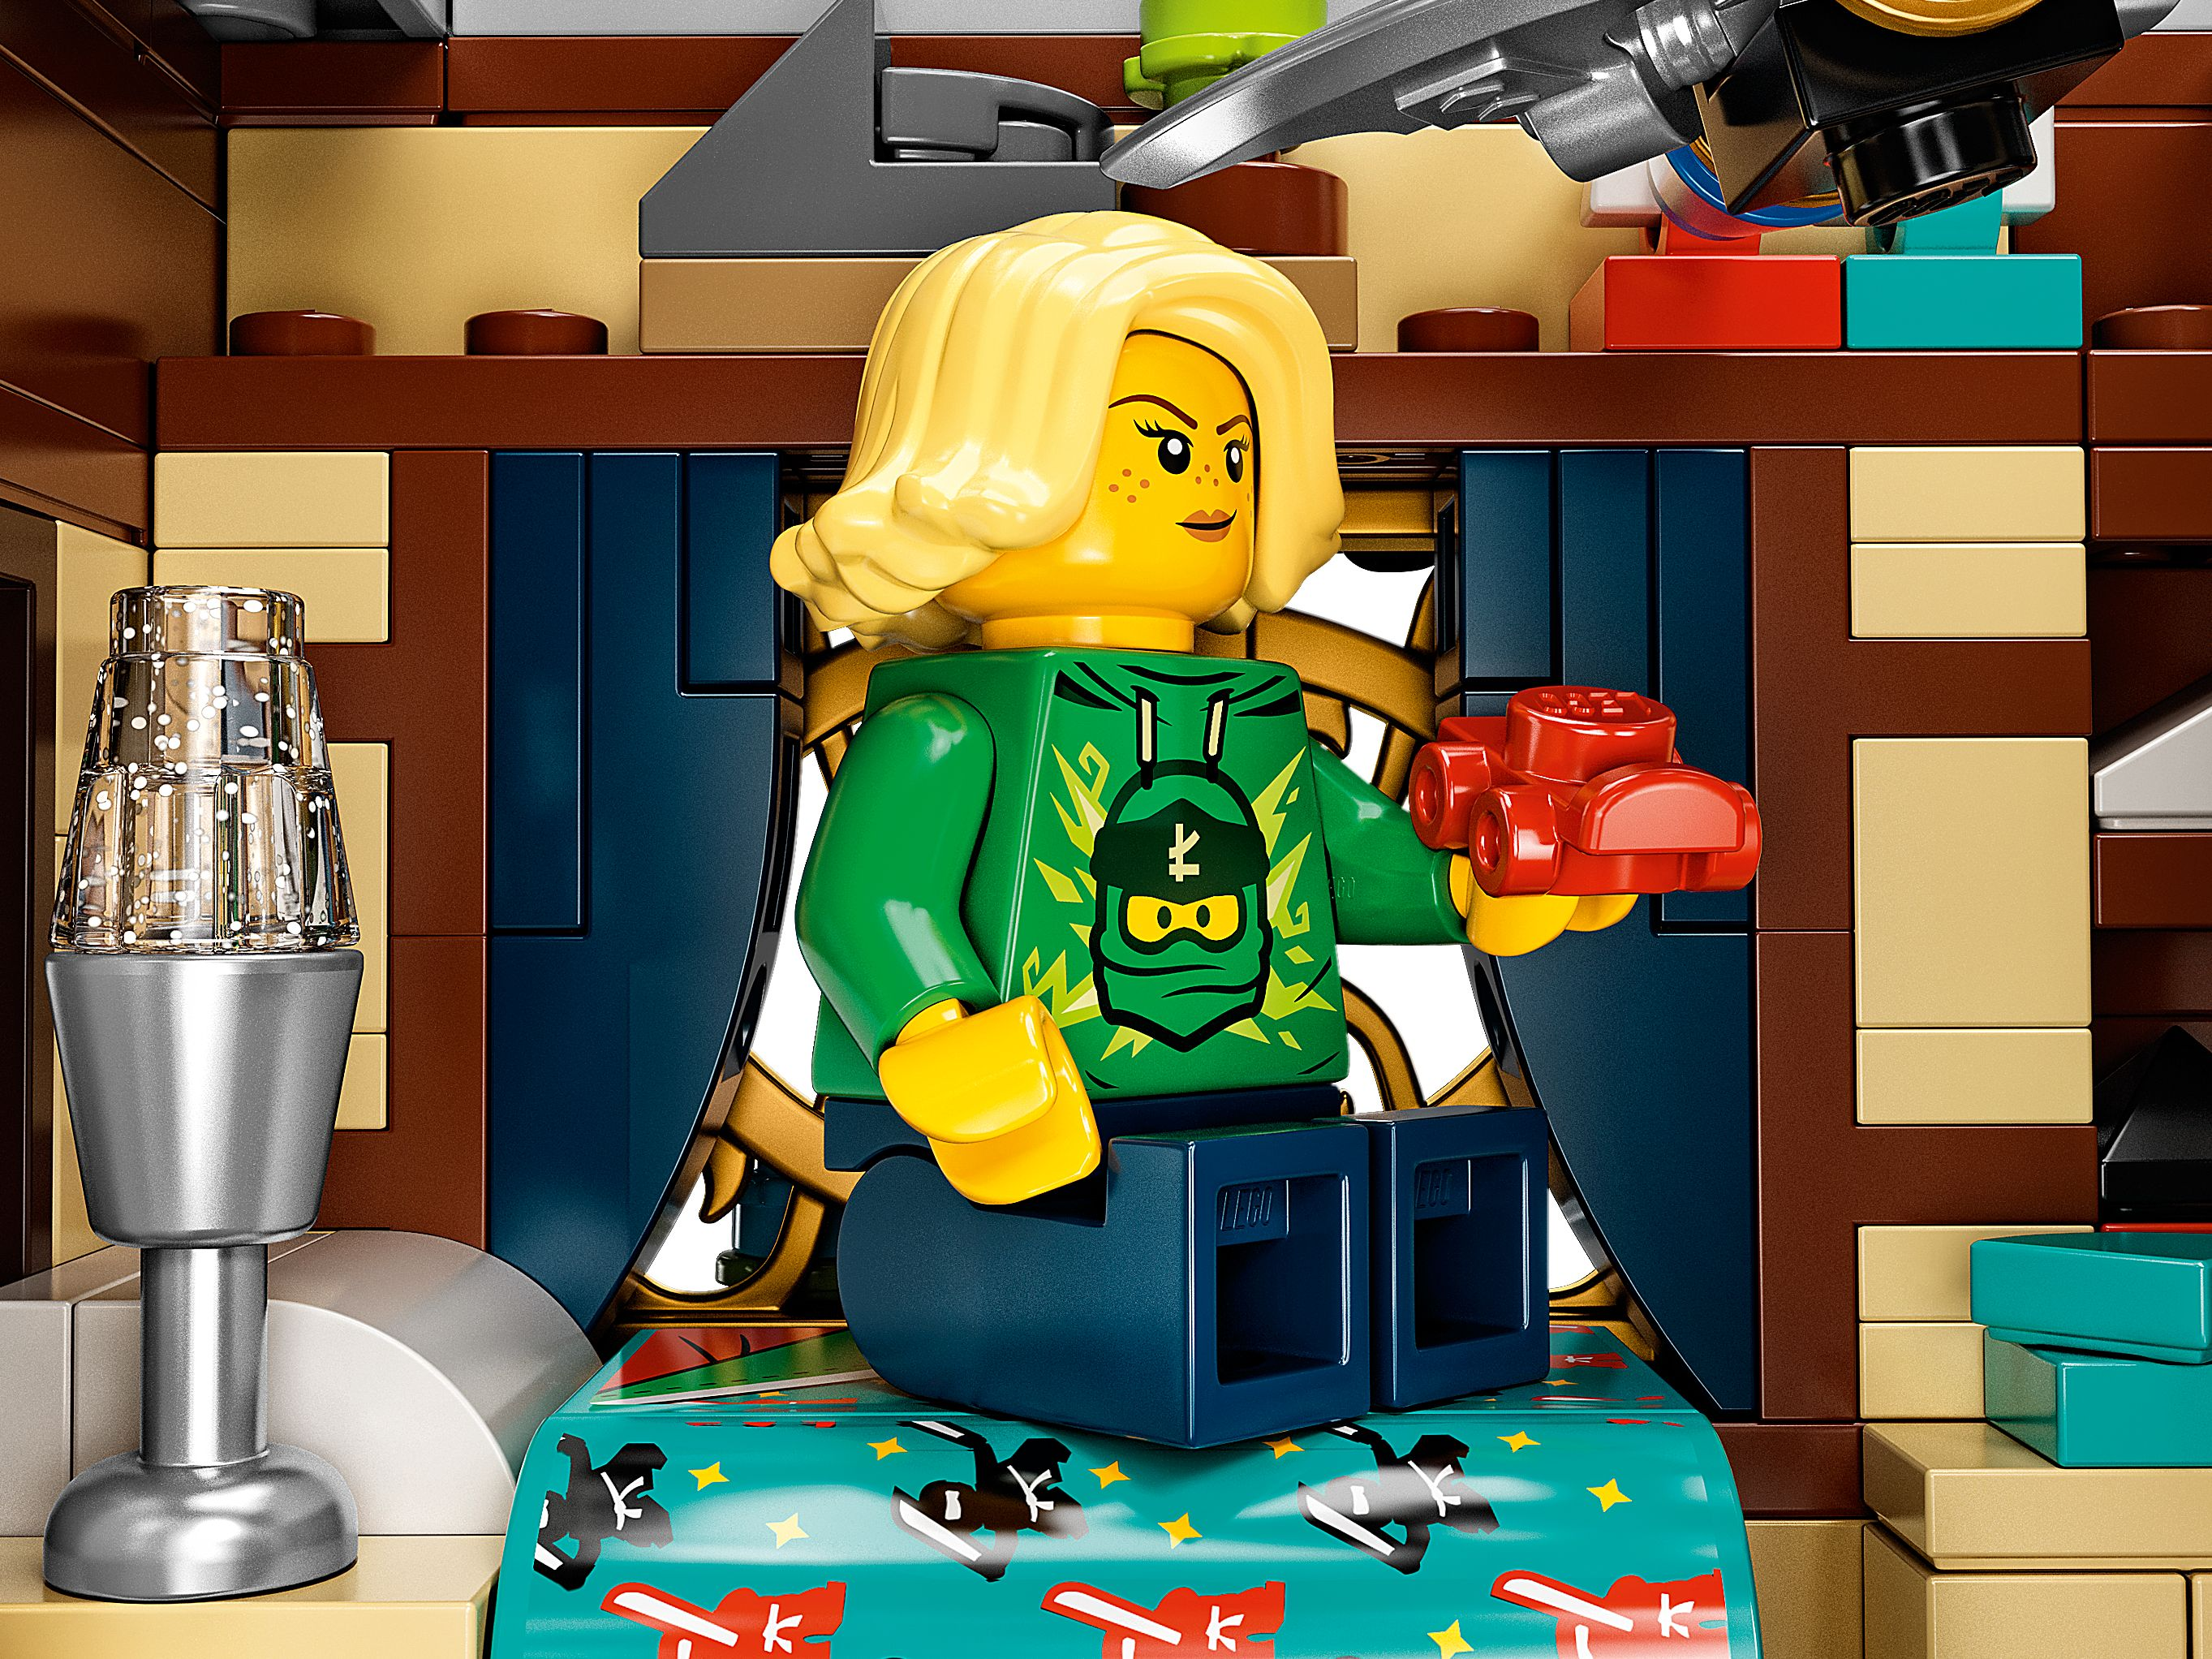 LEGO The LEGO Ninjago Movie 71741 Die Gärten von Ninjago City LEGO_71741_alt12.jpg